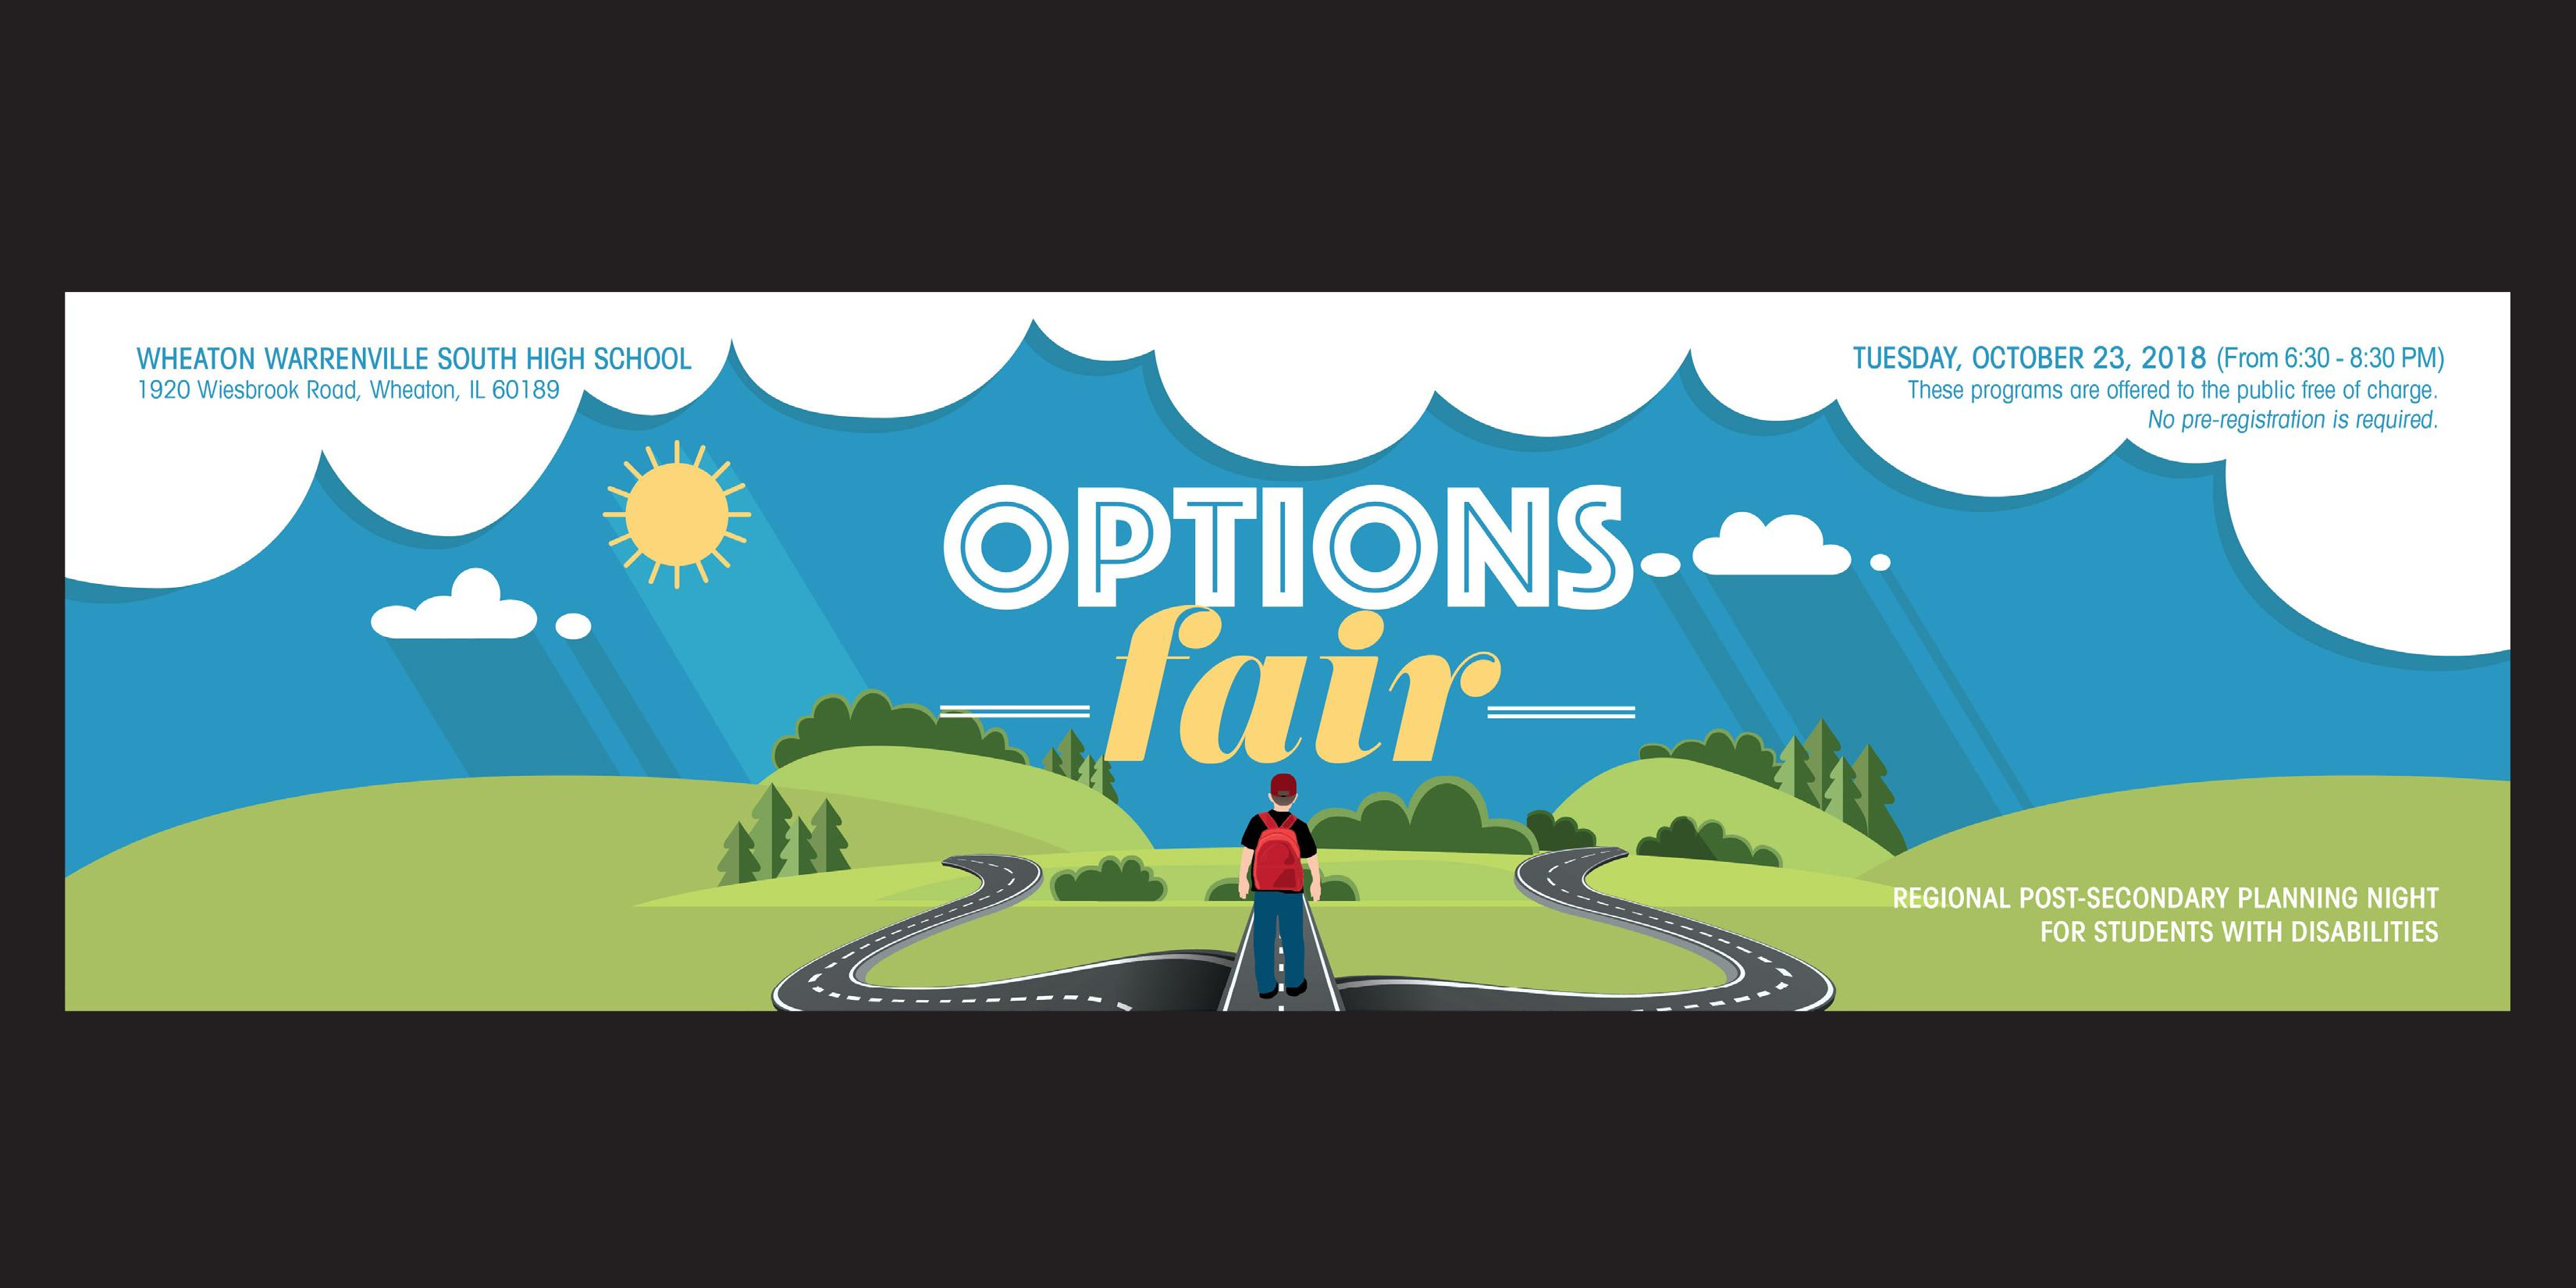 Counseling Corner: Willowbrook Guidance Department shares information about Options Fair for students with special needs